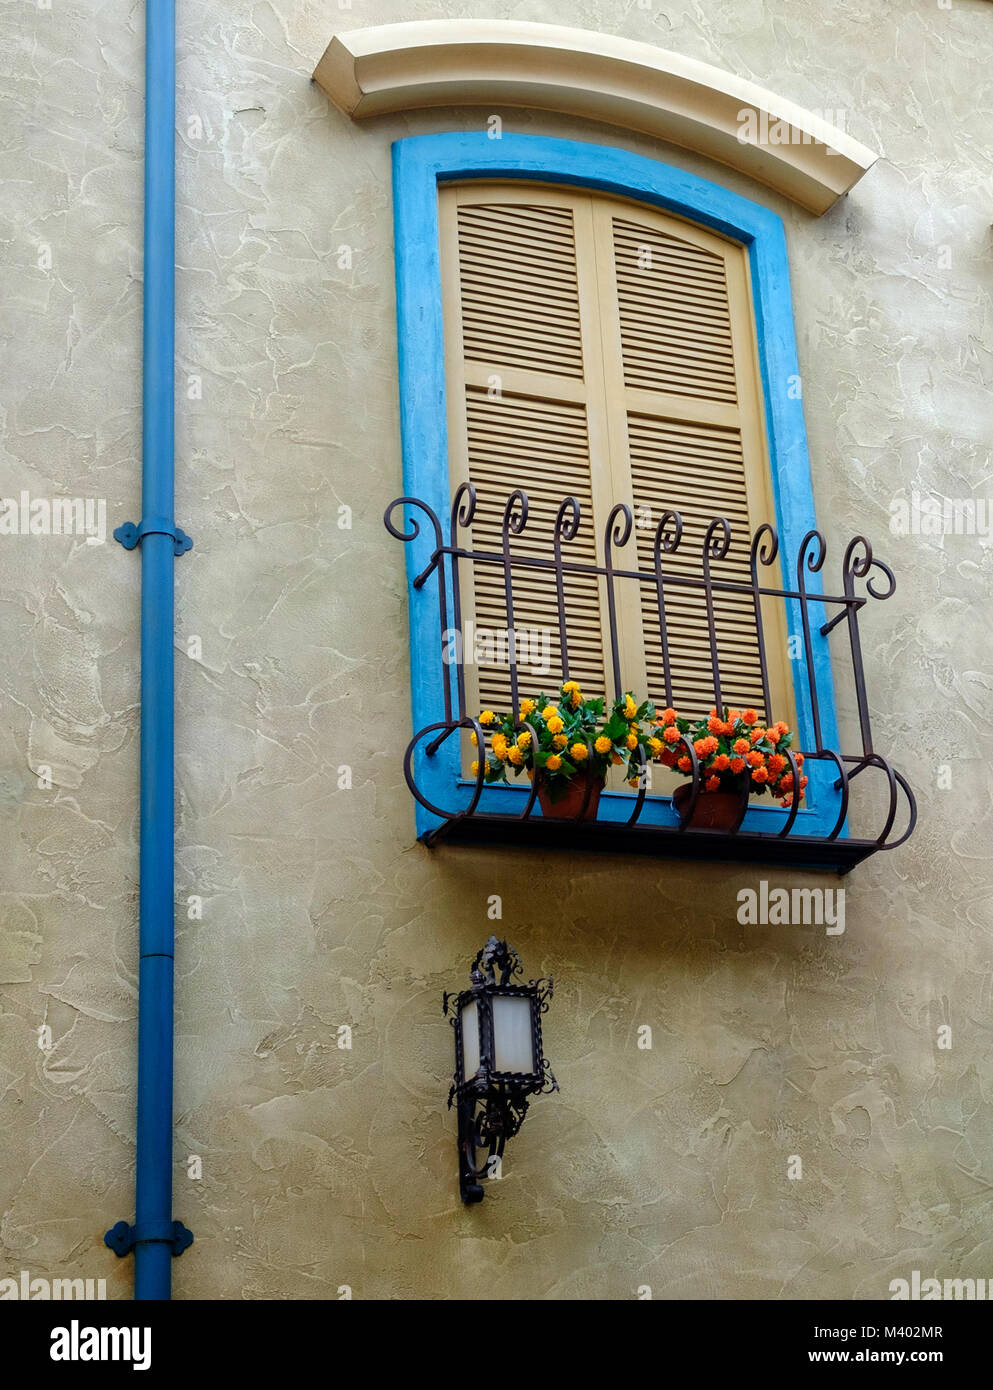 Shuttered window with wrought iron window box, bright flowers & blue frame. Blue drain pipe. Retro lamp on building. - Stock Image